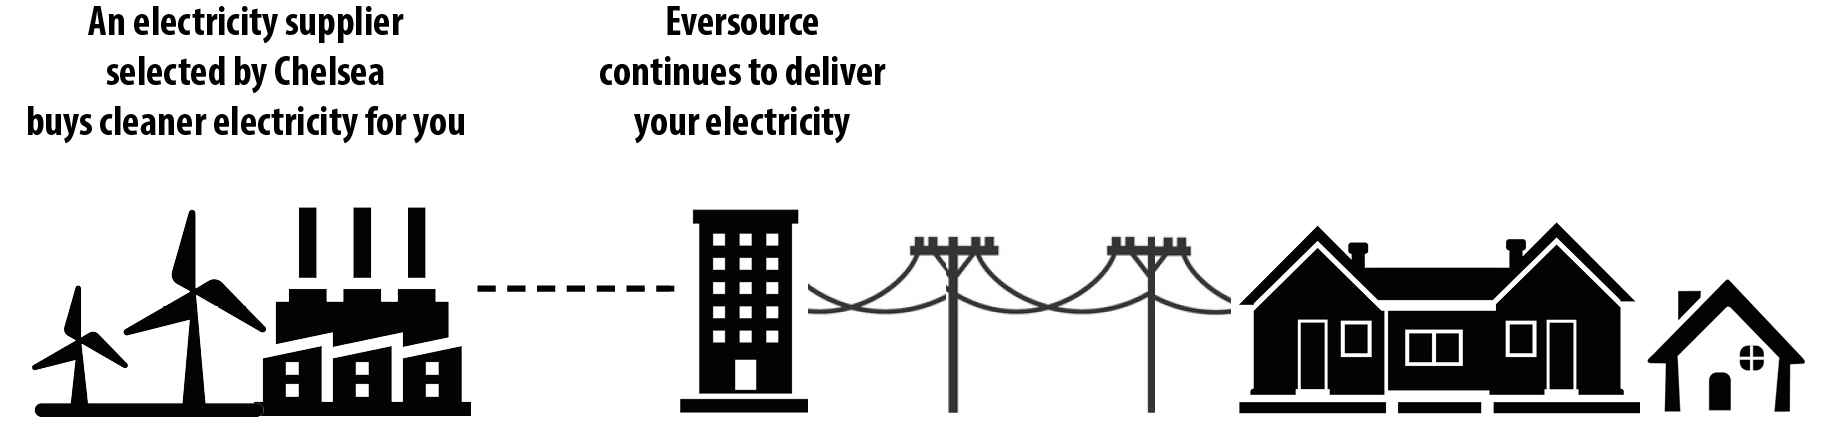 Diagram showing electricity supplier, Eversource, and city of Chelsea